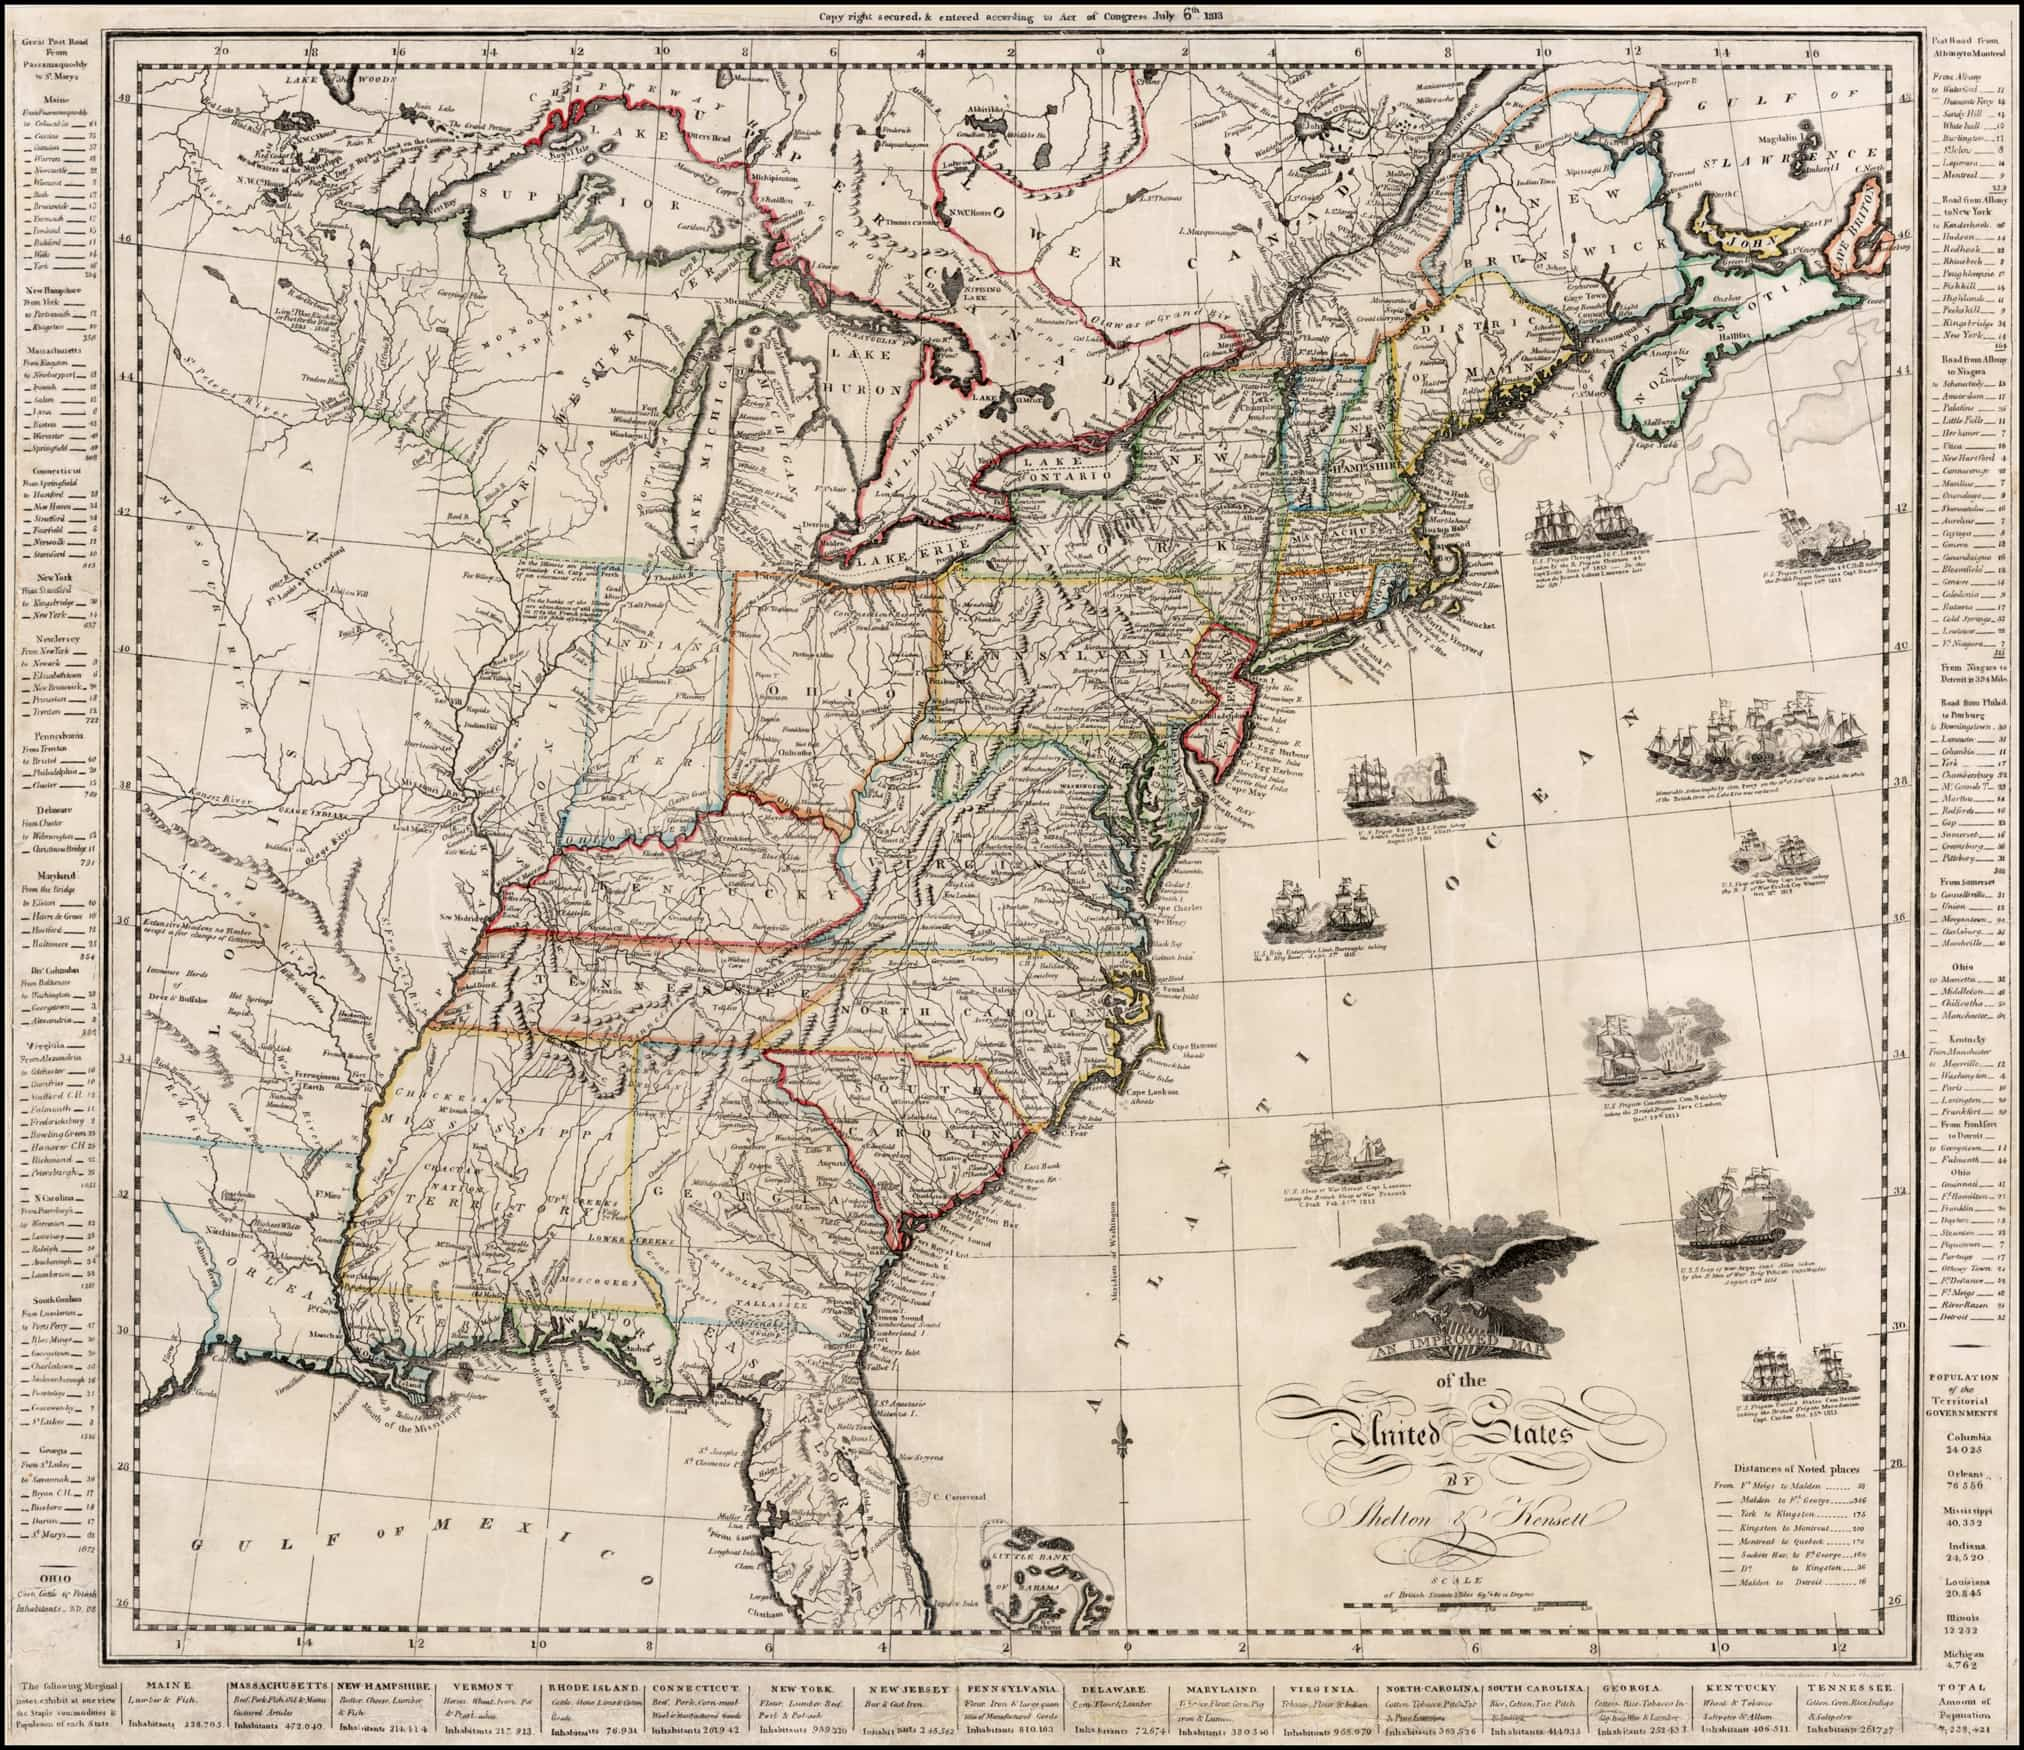 A Scarce War Of 1812 Era Map Of The United States Rare Antique Maps